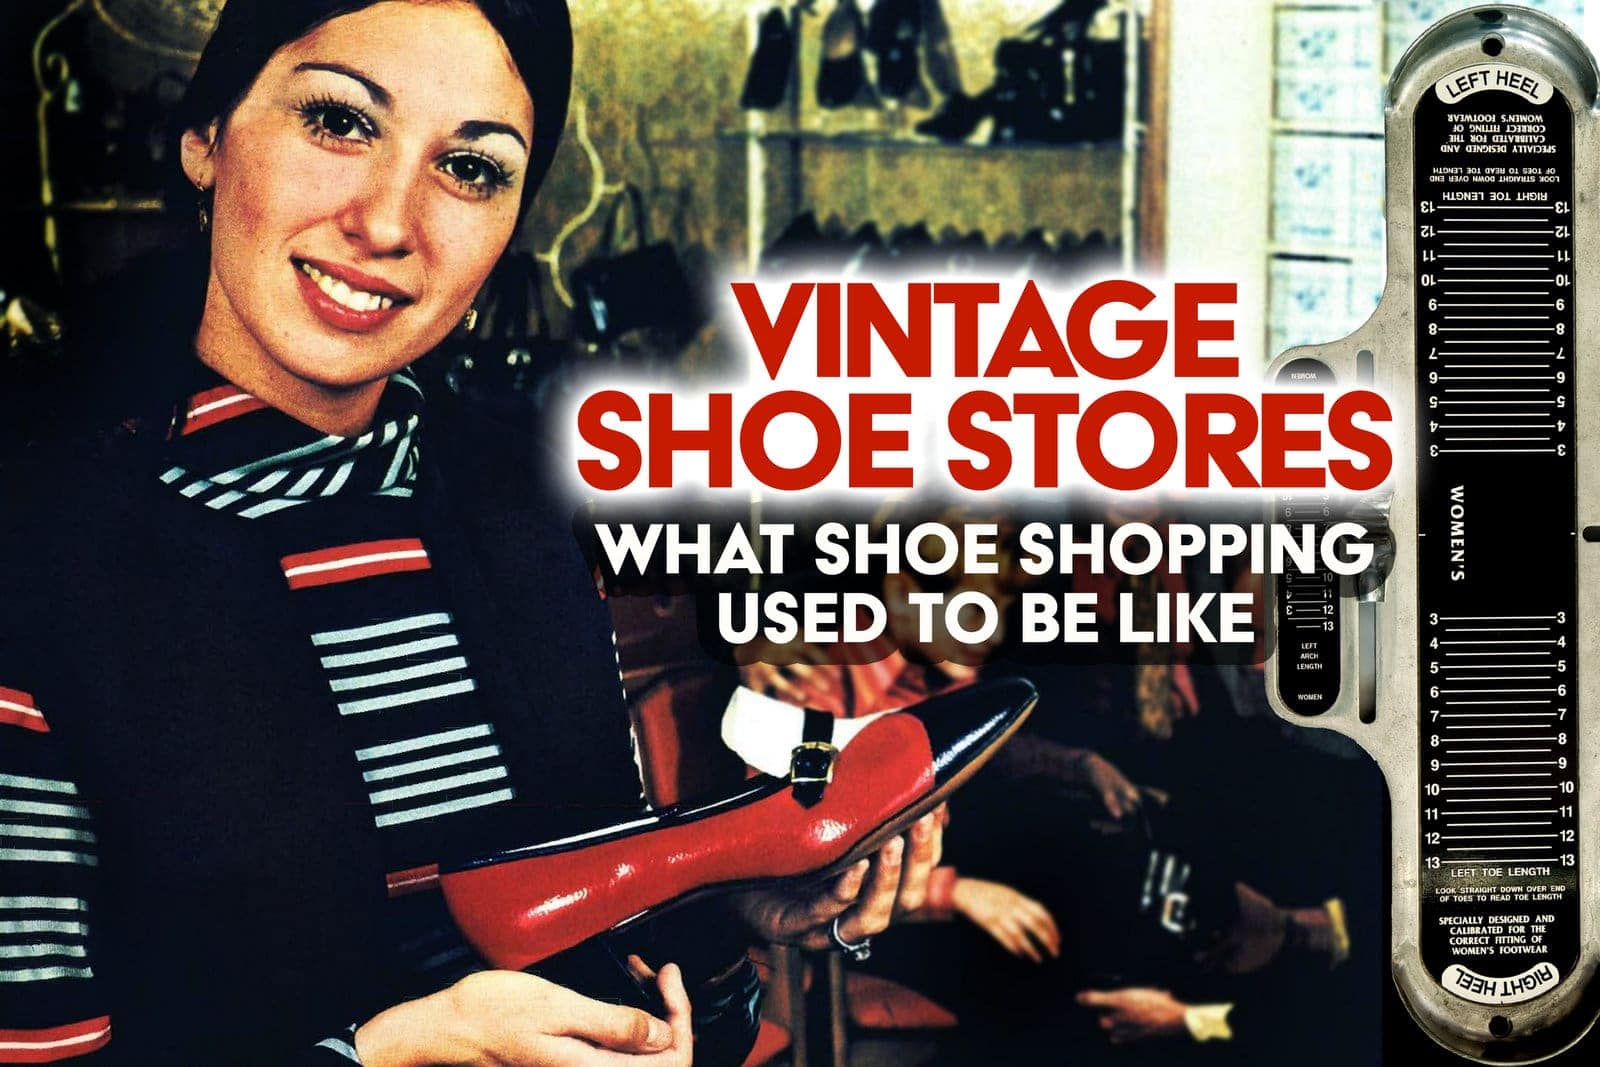 Vintage shoe stores - See what shoe shopping used to be like at Click Americana